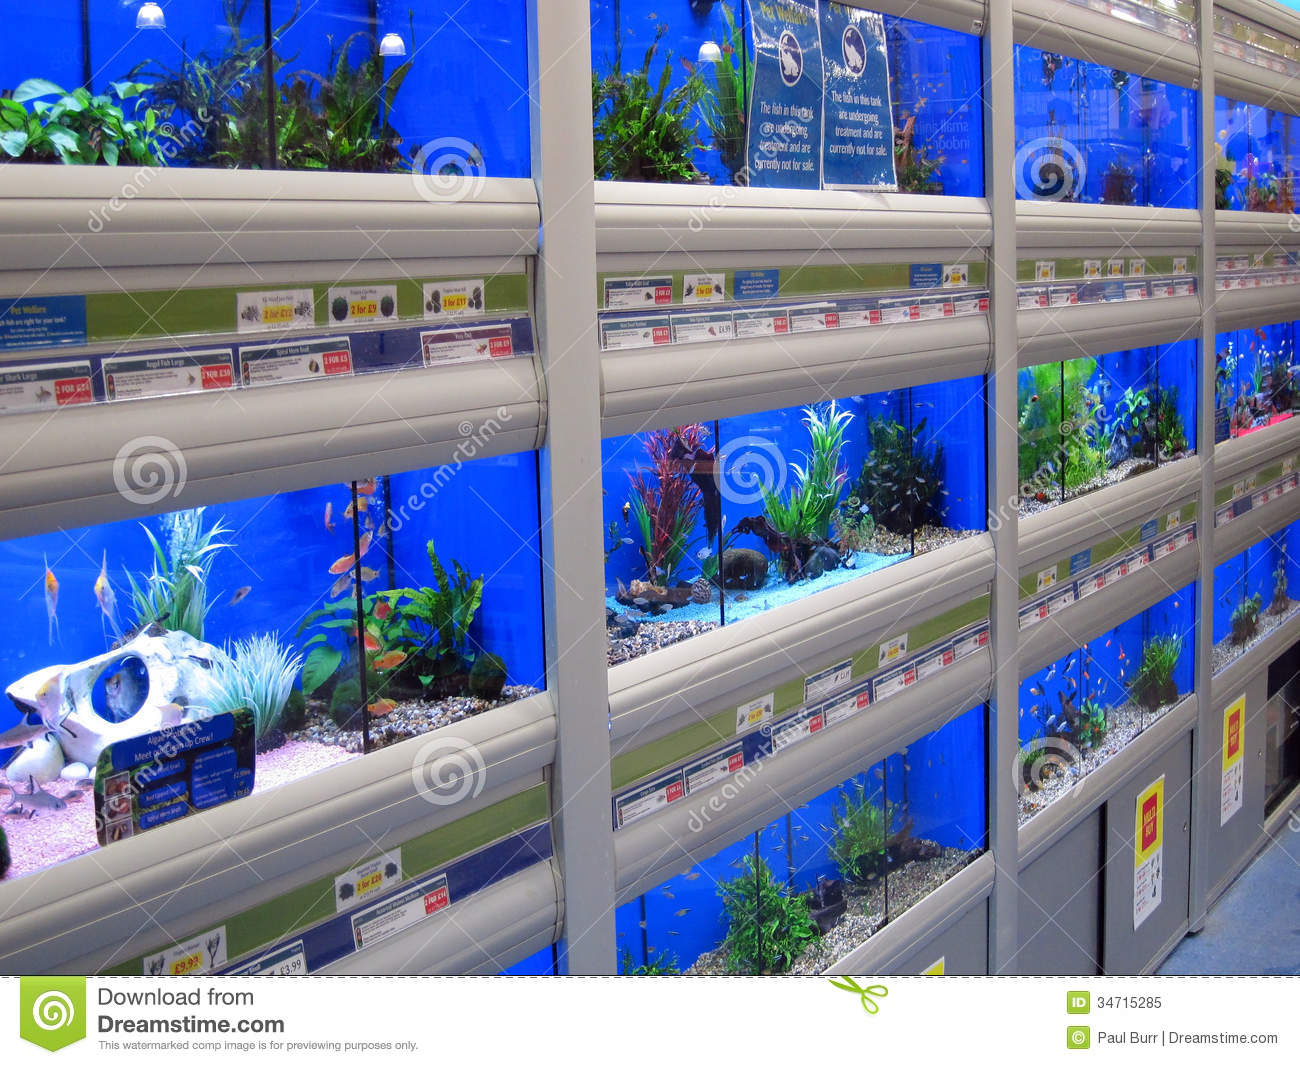 fish-sale-pet-store-tanks-lines-tanks-containing-various-species-pets